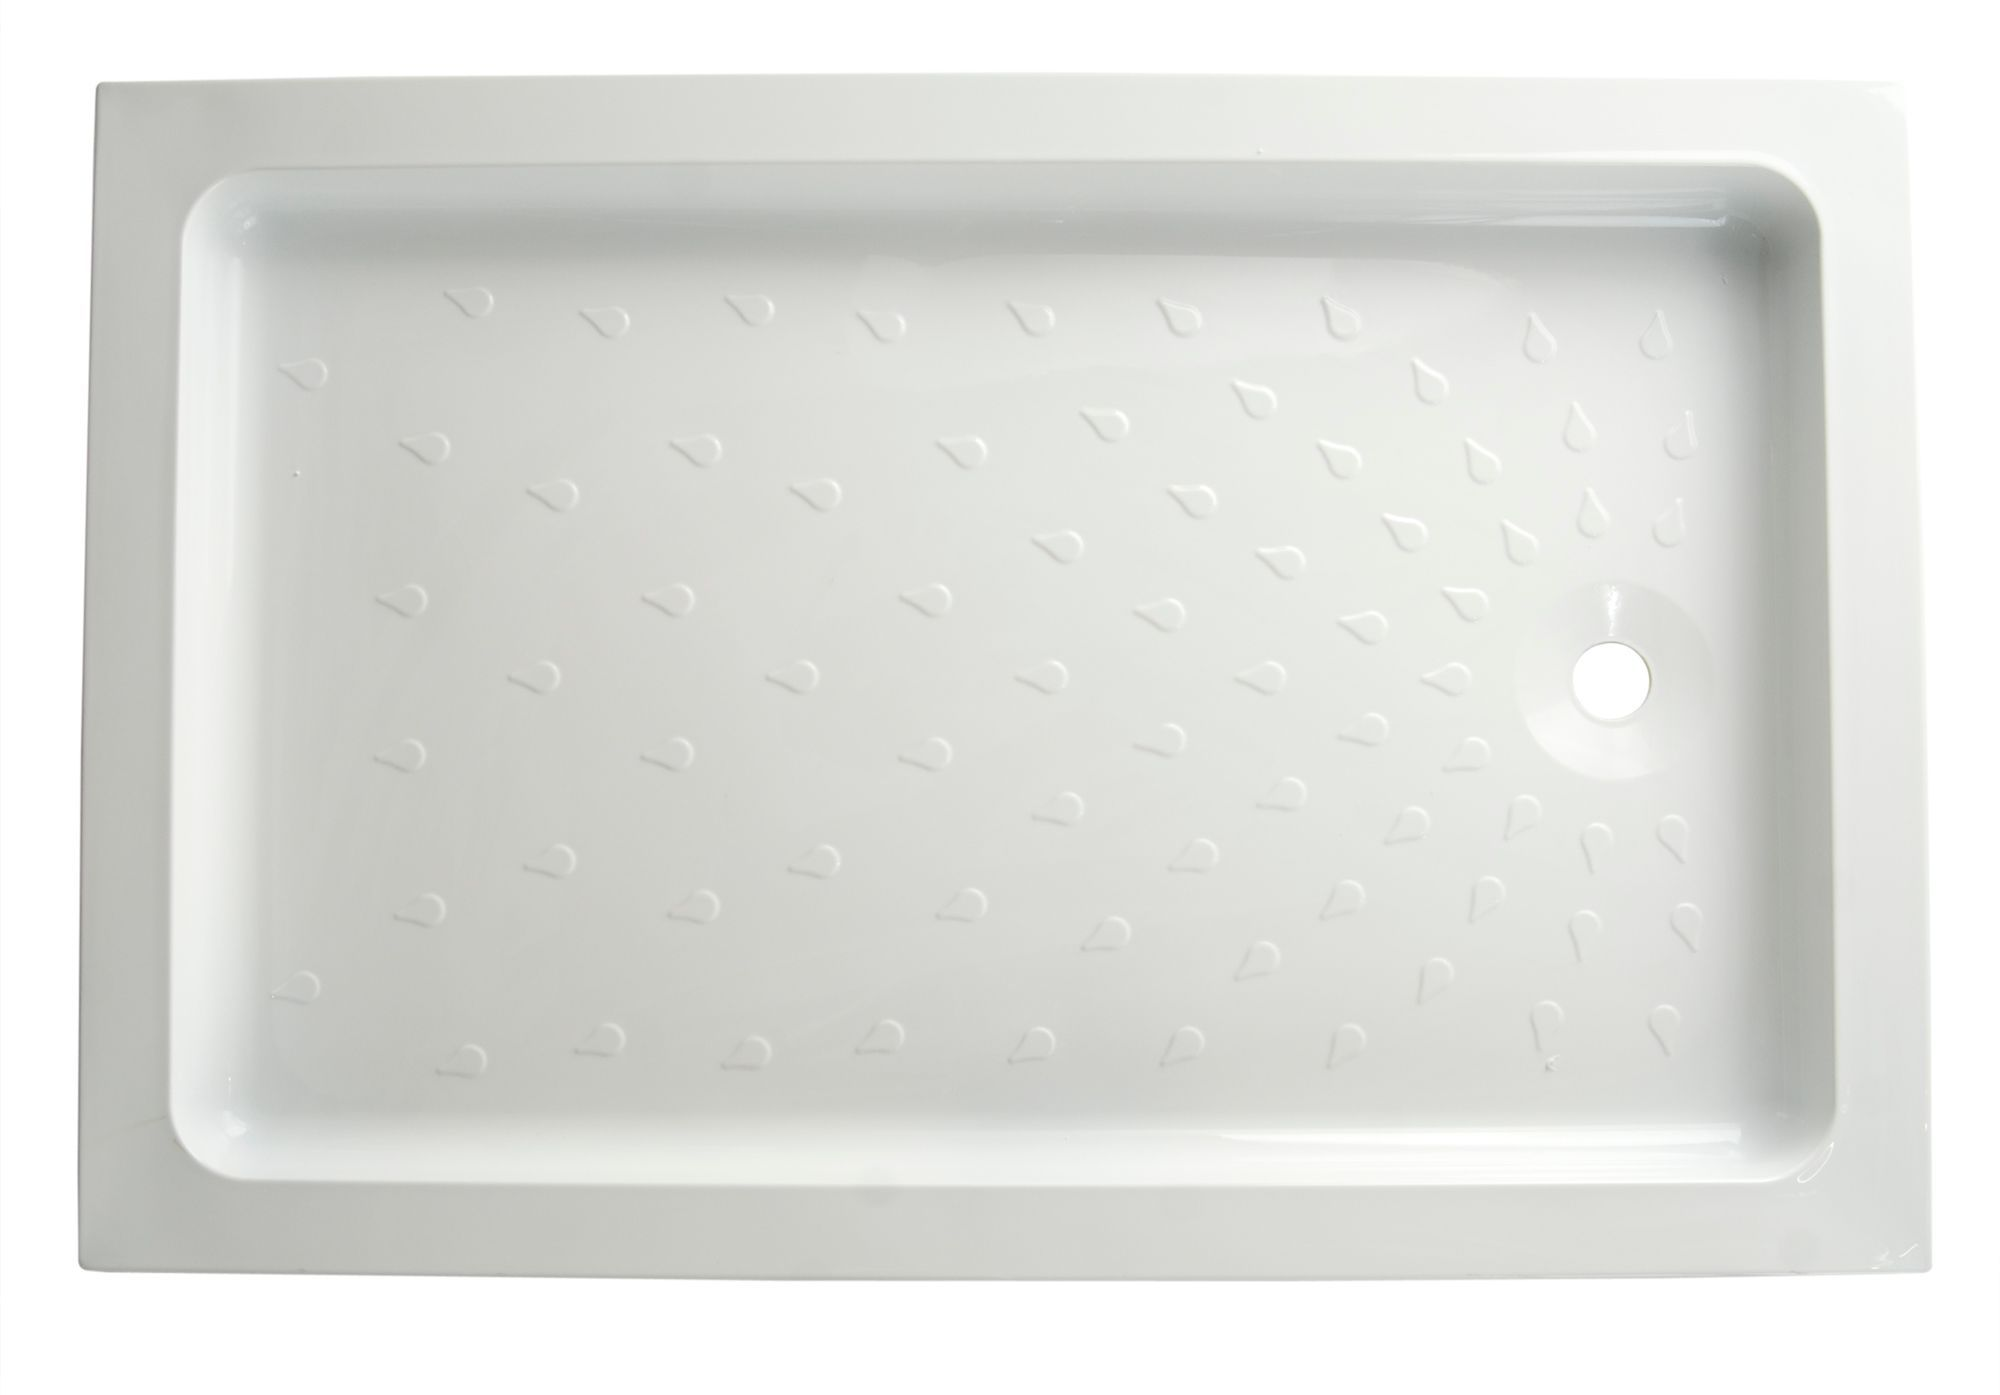 B Amp Q High Wall Rectangular Shower Tray L 1200mm W 800mm